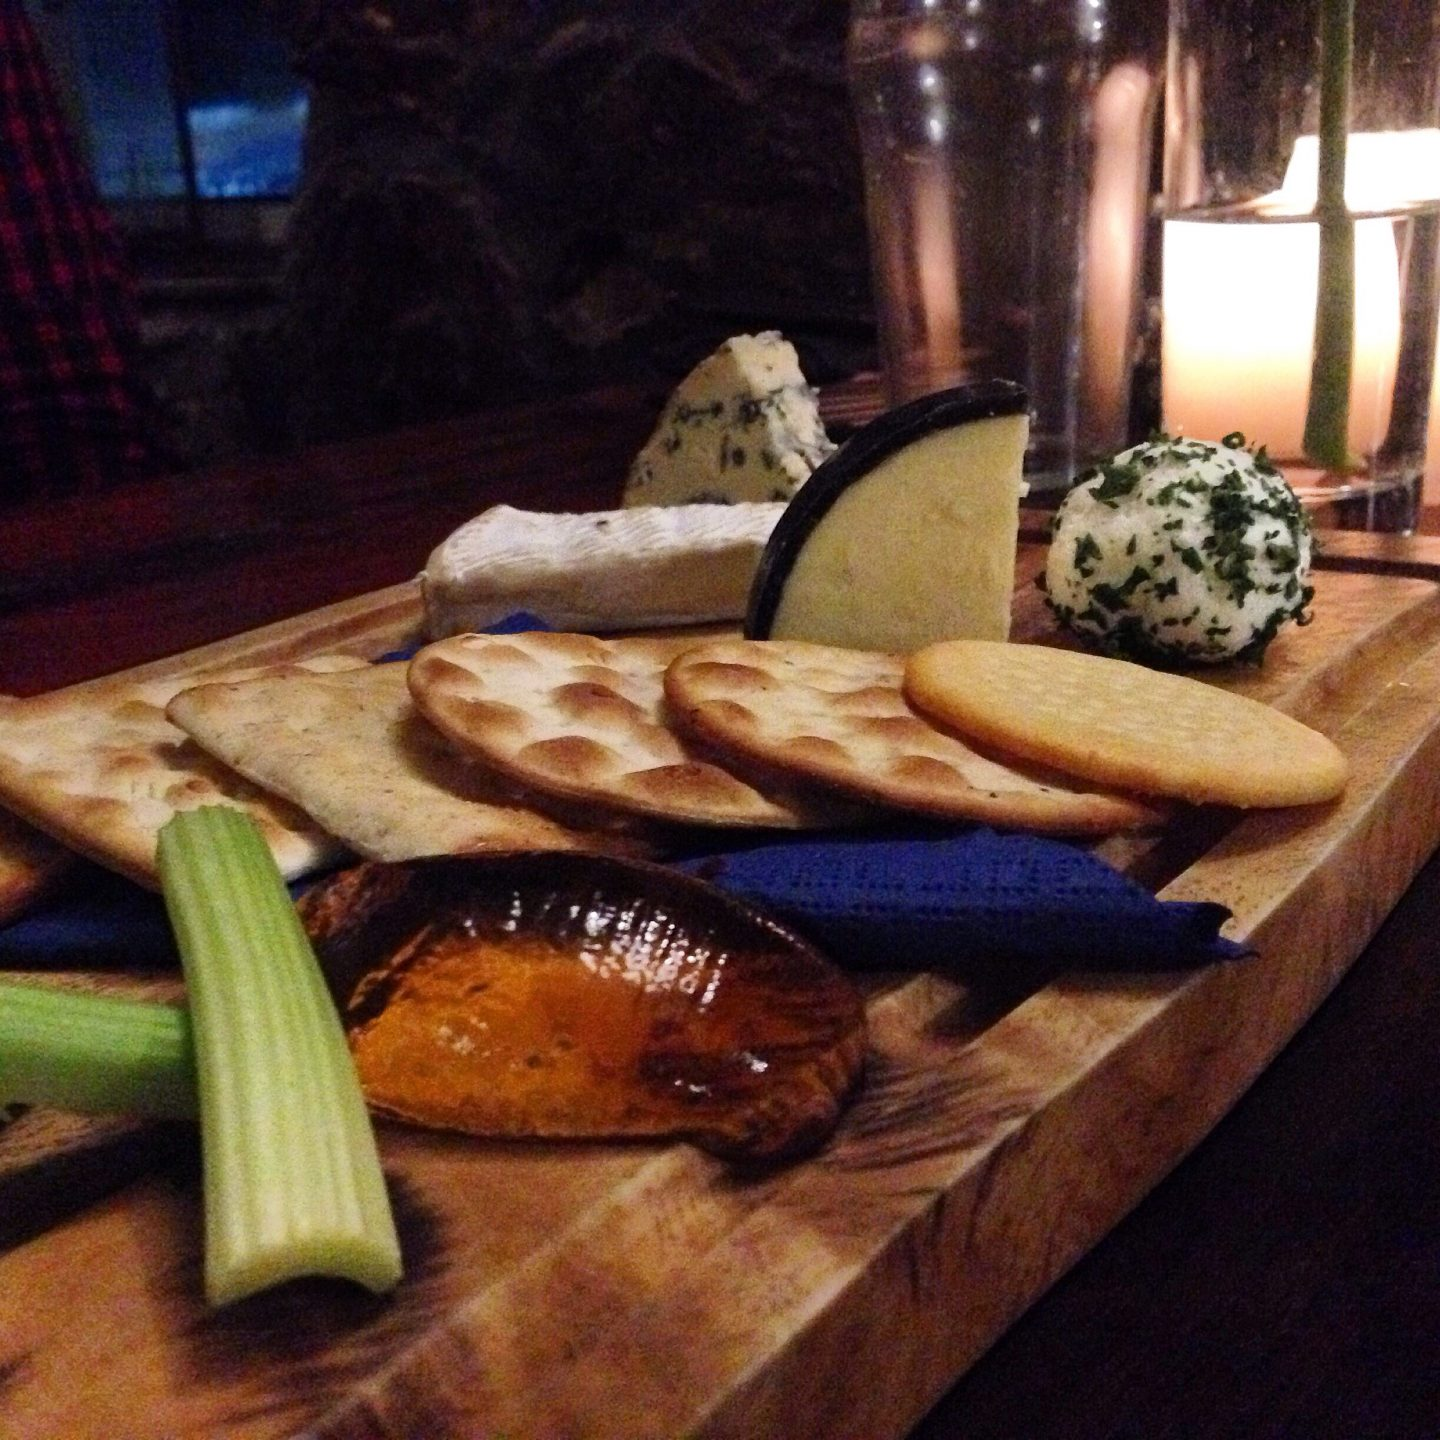 The cheese board at The Ship Inn, Port Eynon